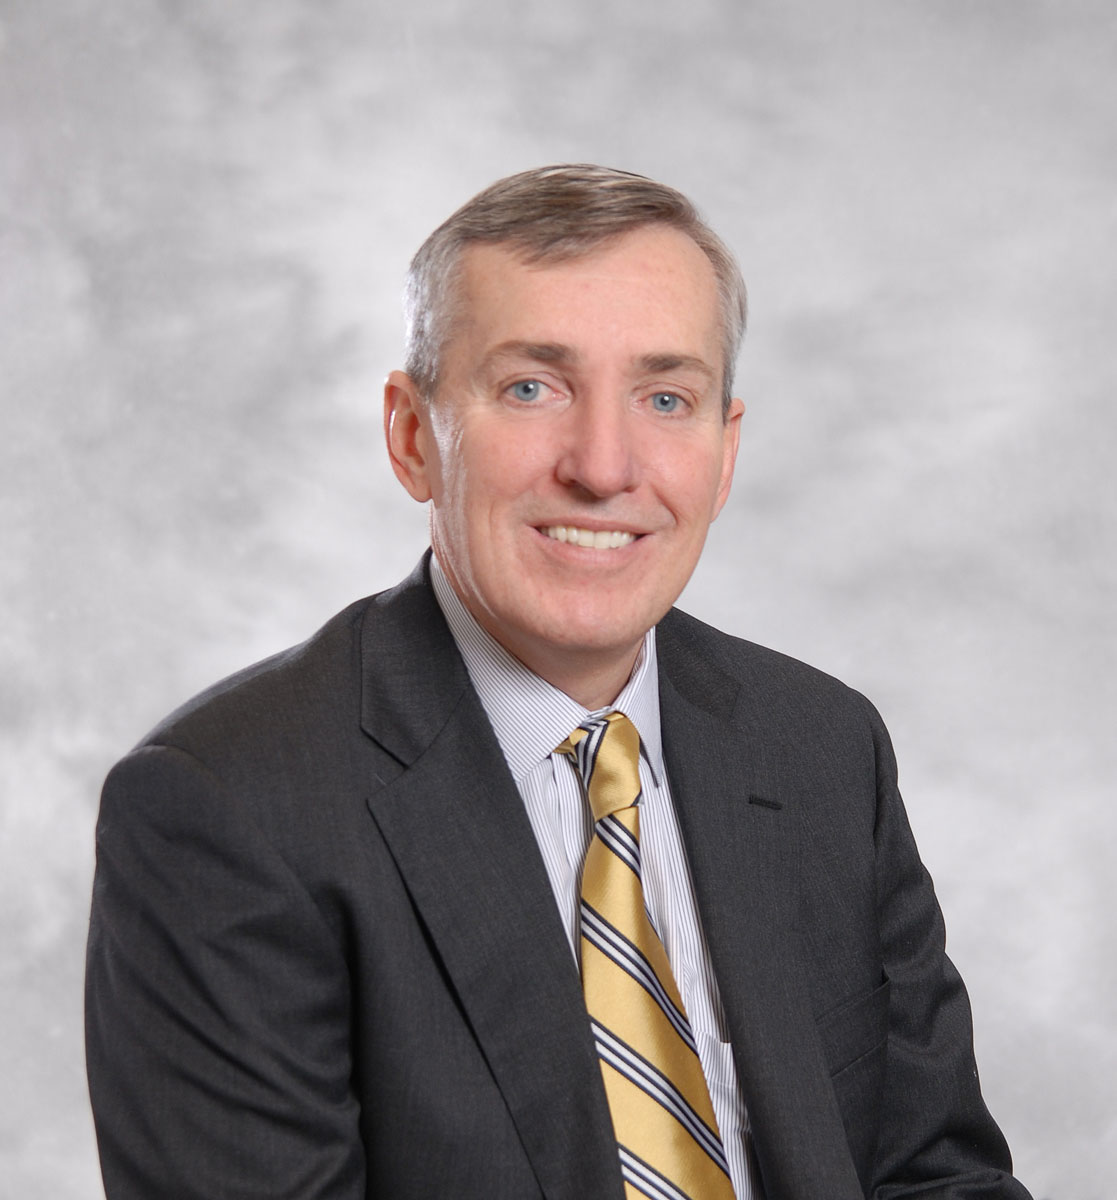 Jerry J. Maginnis, a certified public accountant (CPA), was elected 2012-2013 vice president of the Pennsylvania Institute of Certified Public Accountants (PICPA) at its annual meeting held in Bedford, Pa.